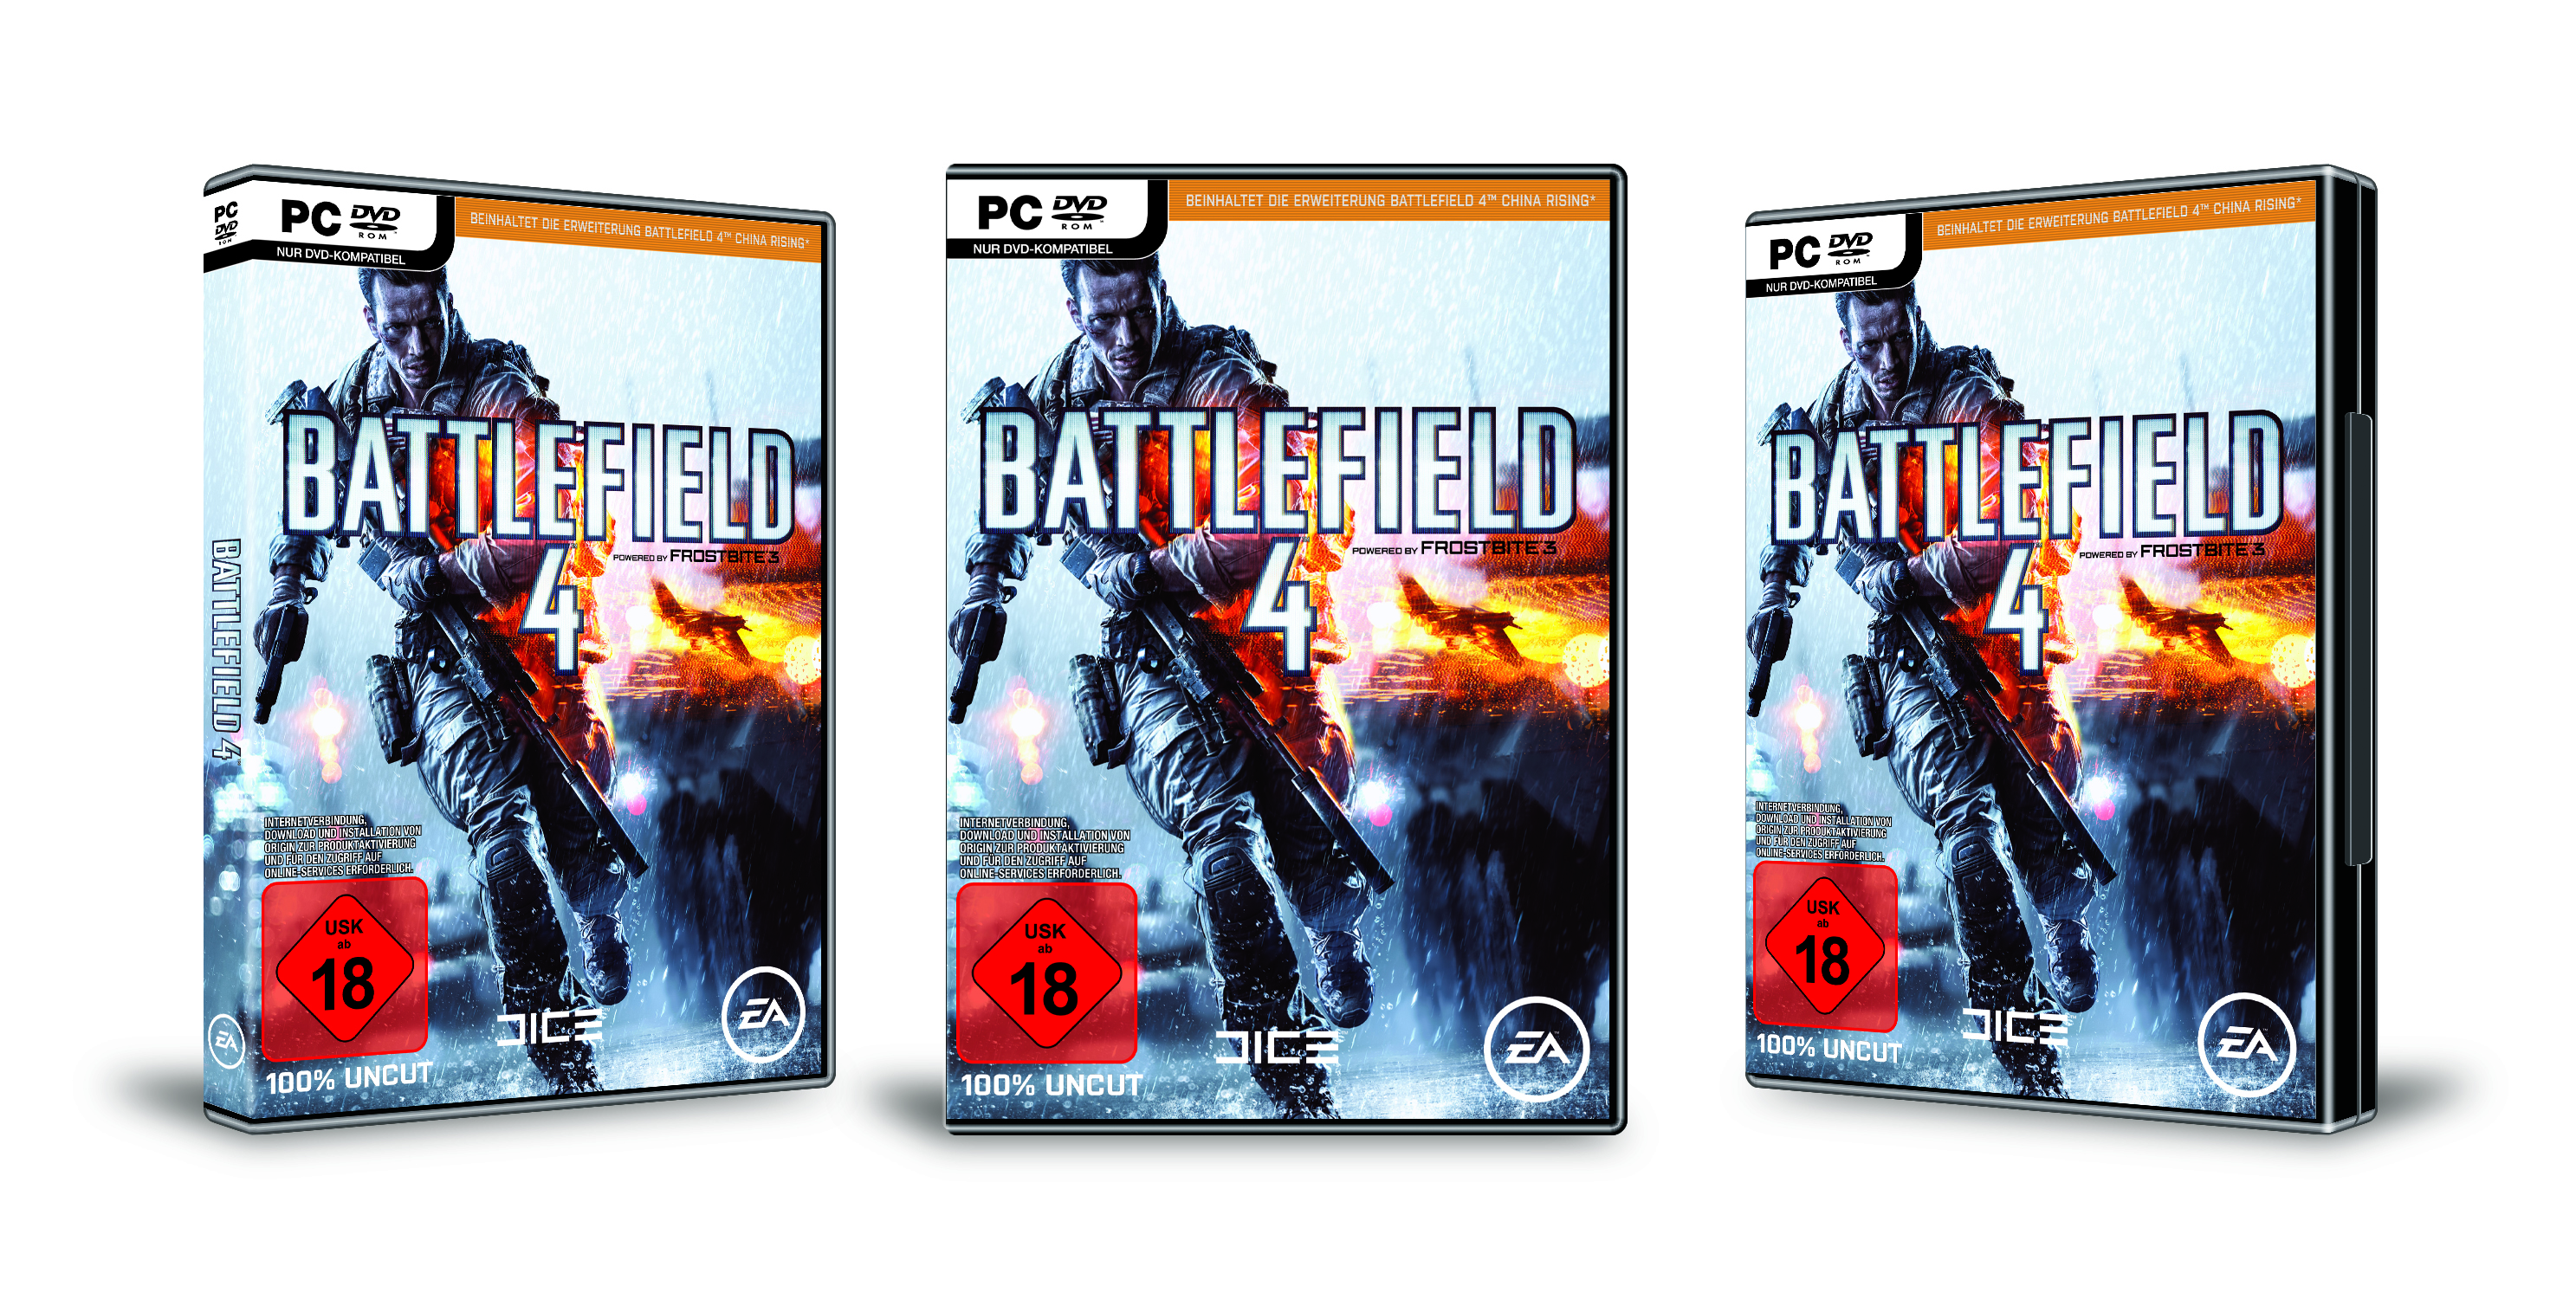 Battlefield4 Pack pc